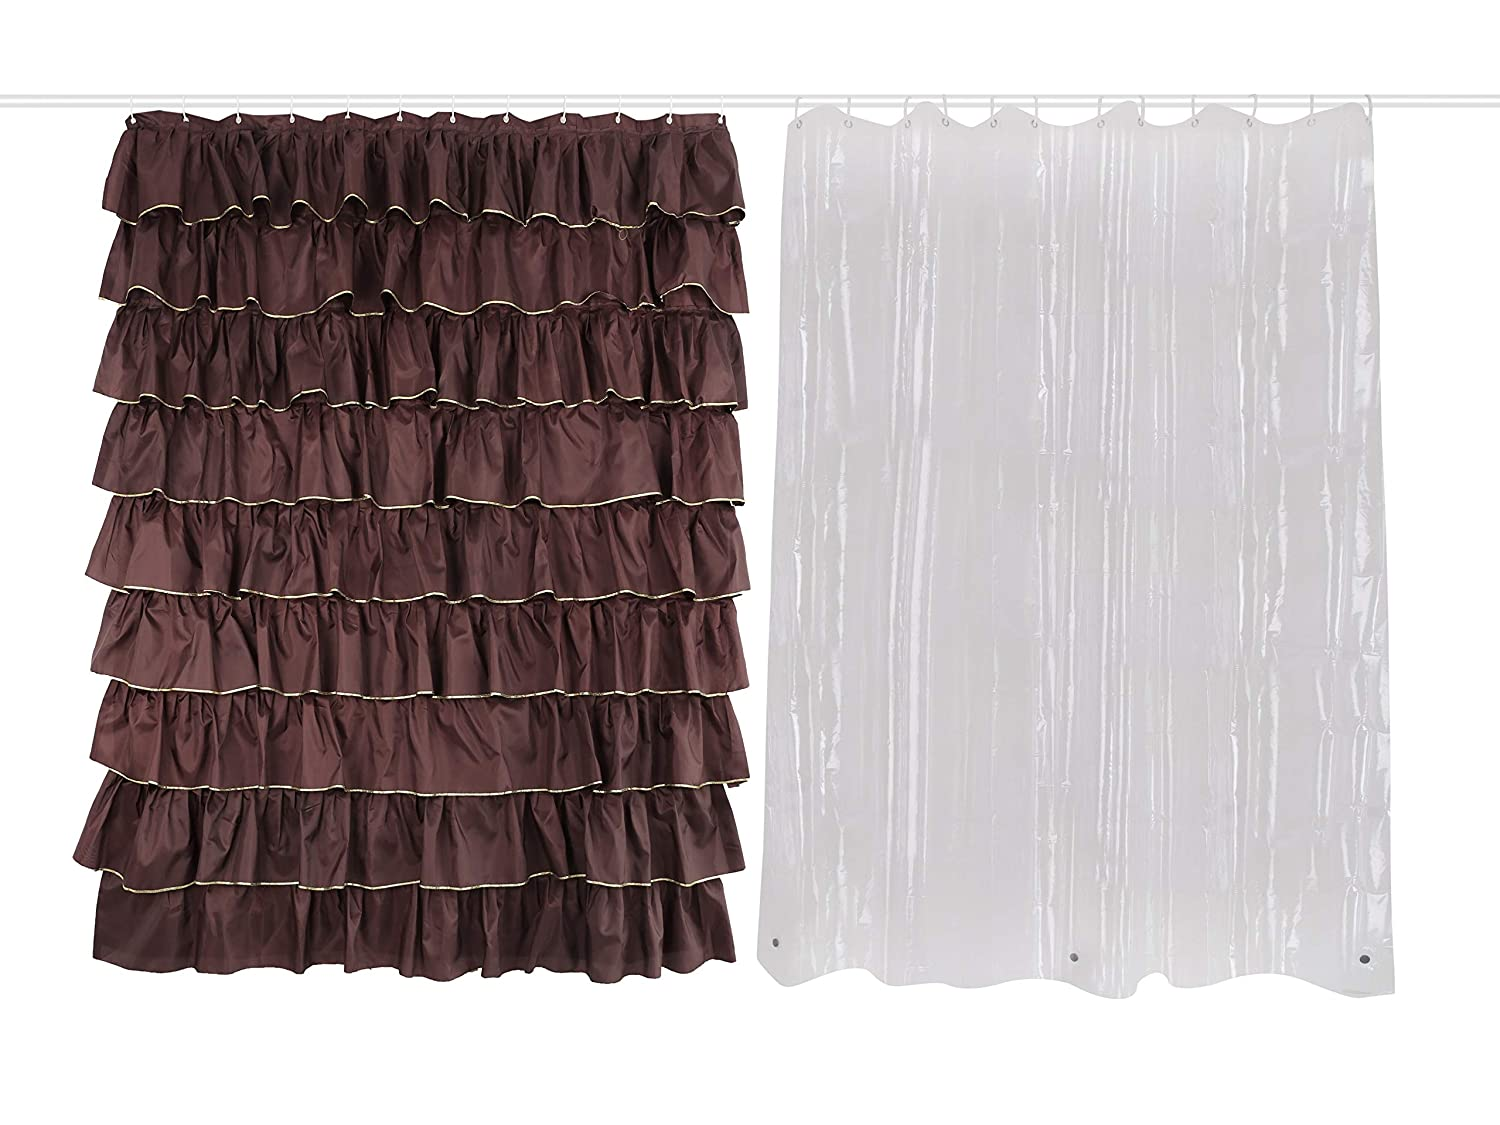 Amazon Dora Liz Sets 2 Pack Brown Shower Curtain Golden Ruffle Fabric And Clear Liner With Hooks For Bathroom Extra Long 72x72